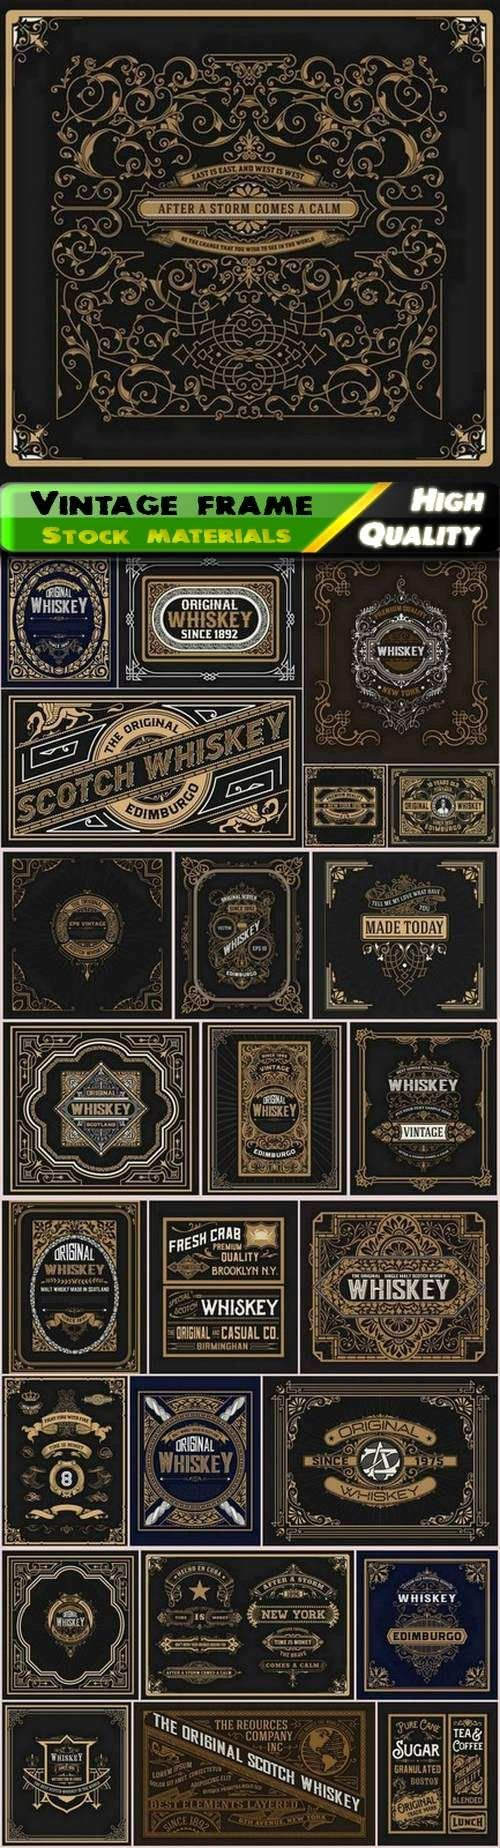 Vintage frame for menu and old whiskey label in hipster style - 25 Eps